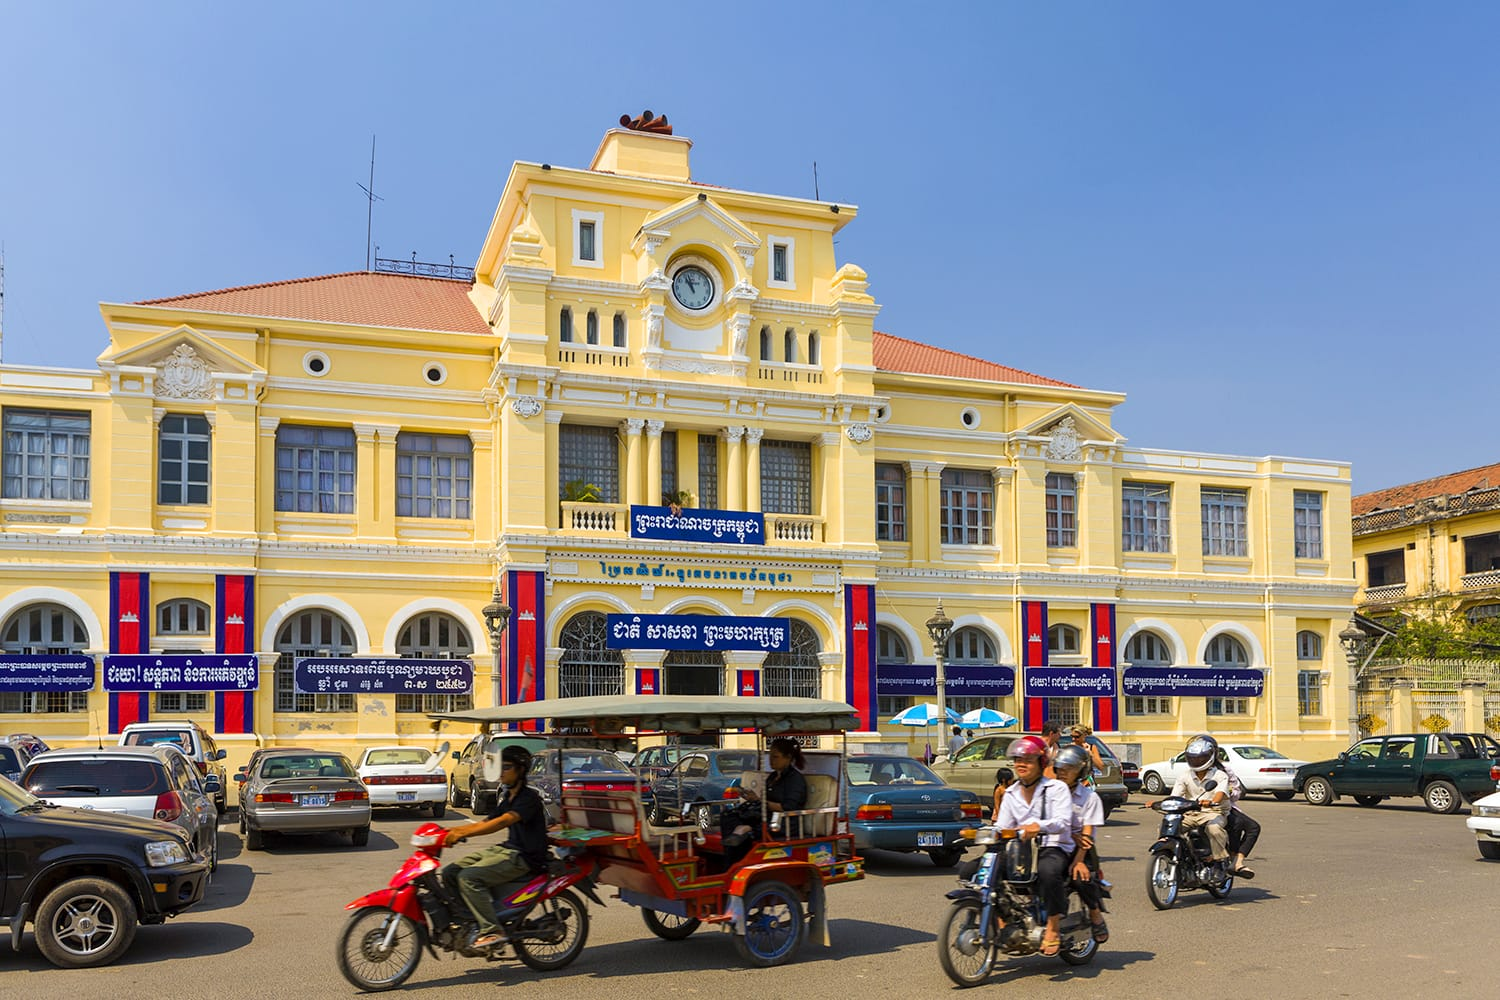 The French-era Post Office in Phnom Penh, Cambodia